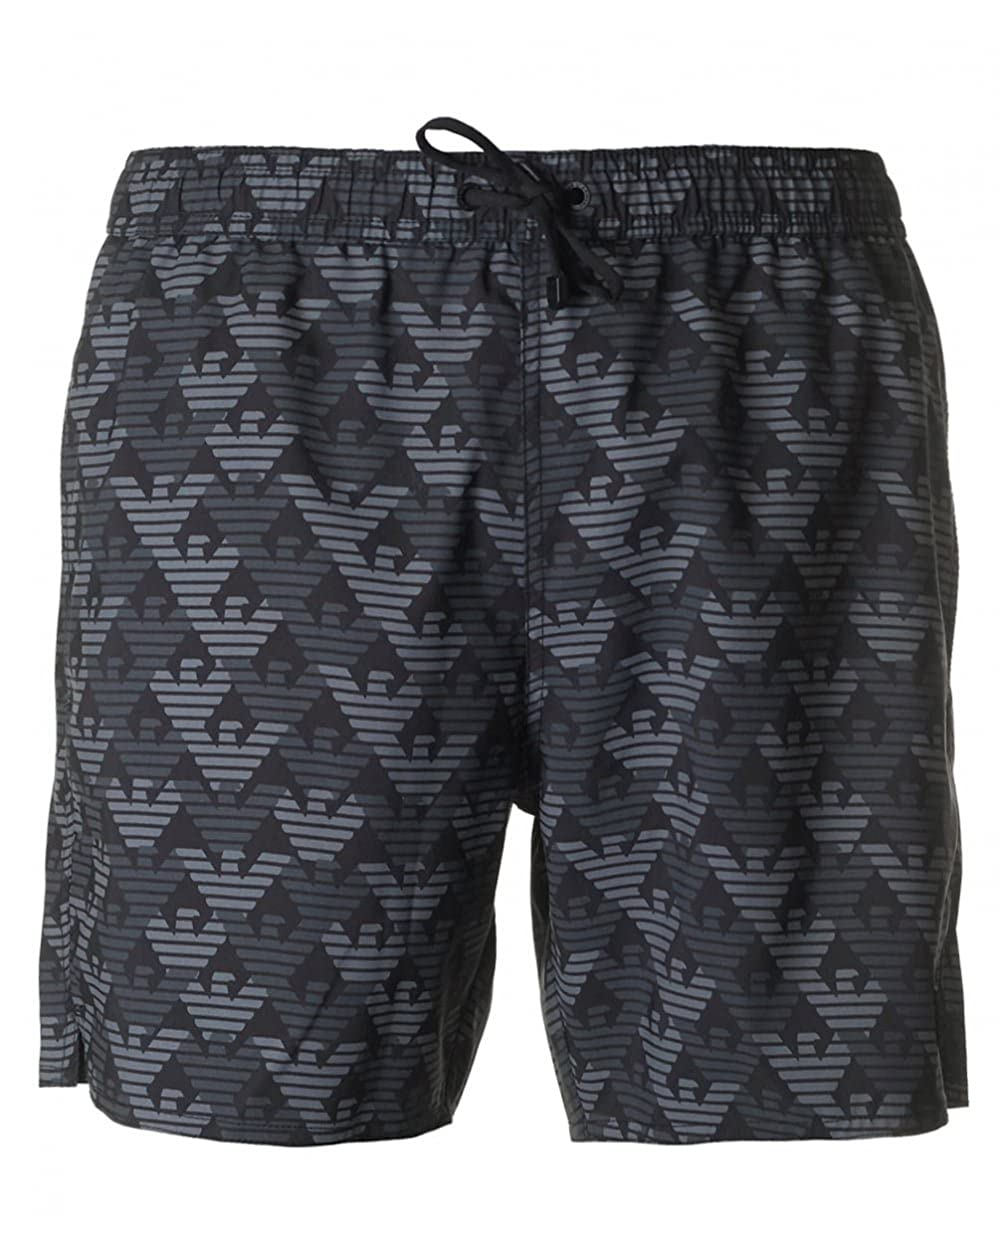 8a8b91061e Ea7 Swimwear Seaworld All Over Eagle Logo Swim Shorts Medium BLACK: Amazon. co.uk: Clothing